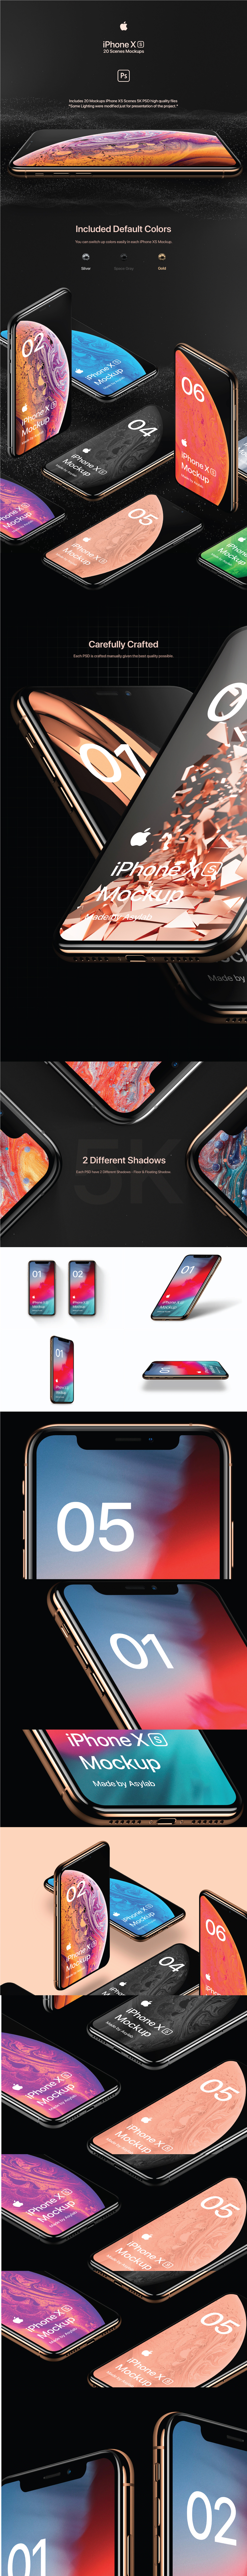 iPhone-XS-Mockup-Long.jpg